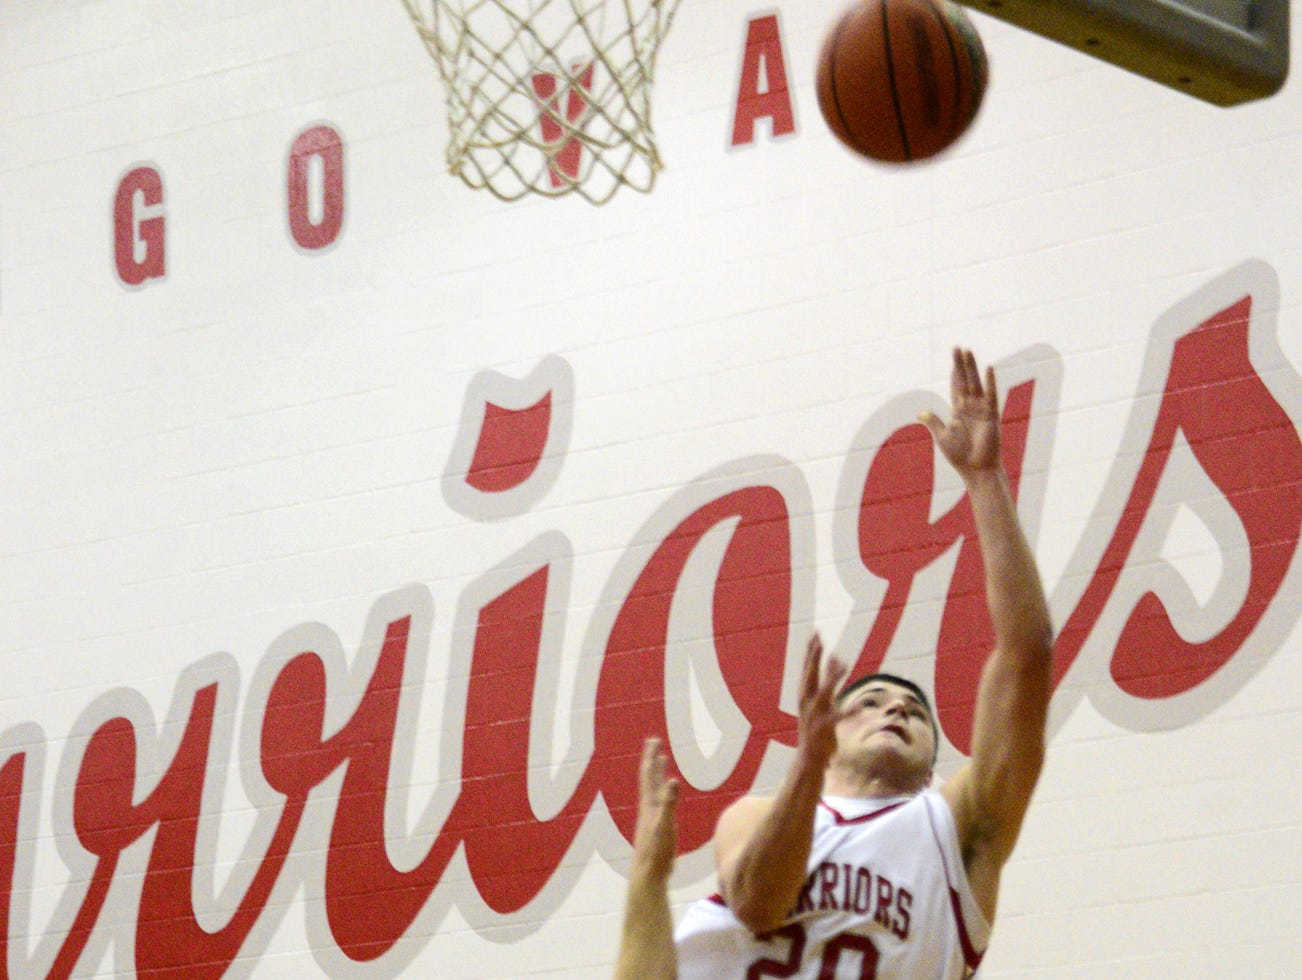 2012: Chris Ruffo of Chenango Valley shoots over Norwich's Michael Oralls in the 1st half of Wednesday's game at CV High School. Ruffo scored 21 points, but Norwich won, 61-47.